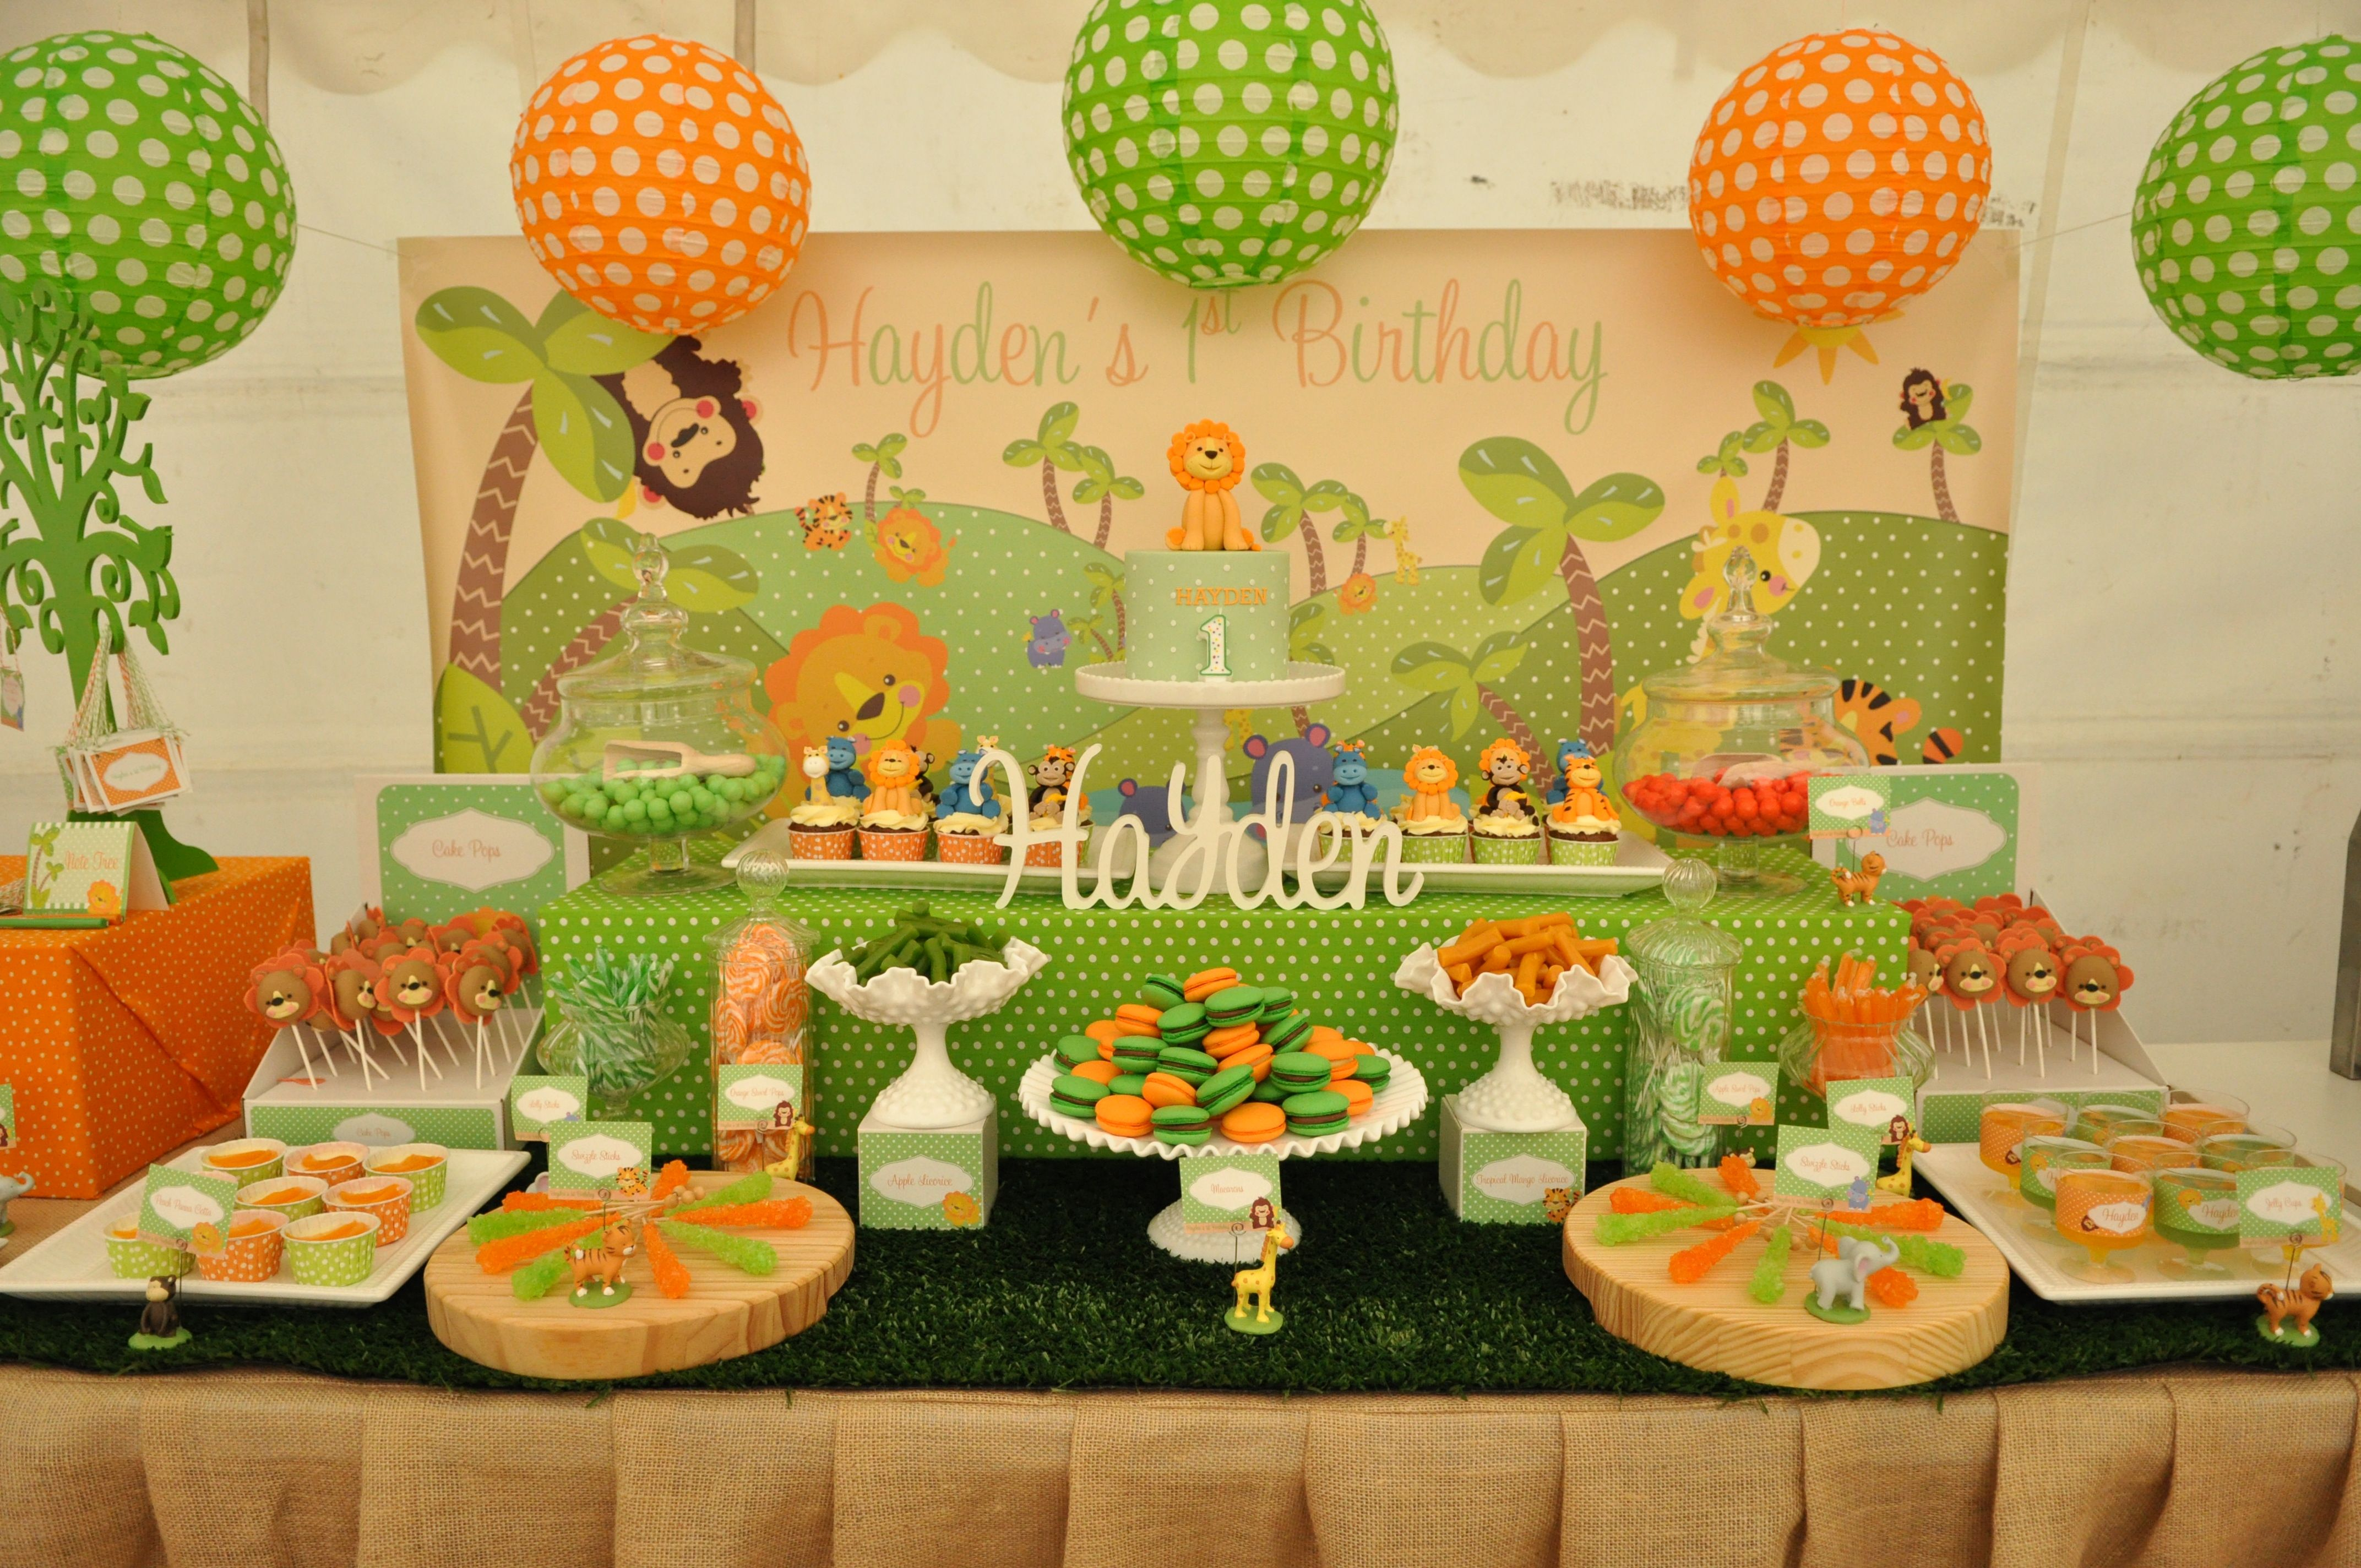 My Orange And Green Jungle Animal Themed Dessert Table I Designed And Set Up For Hayden S 1st